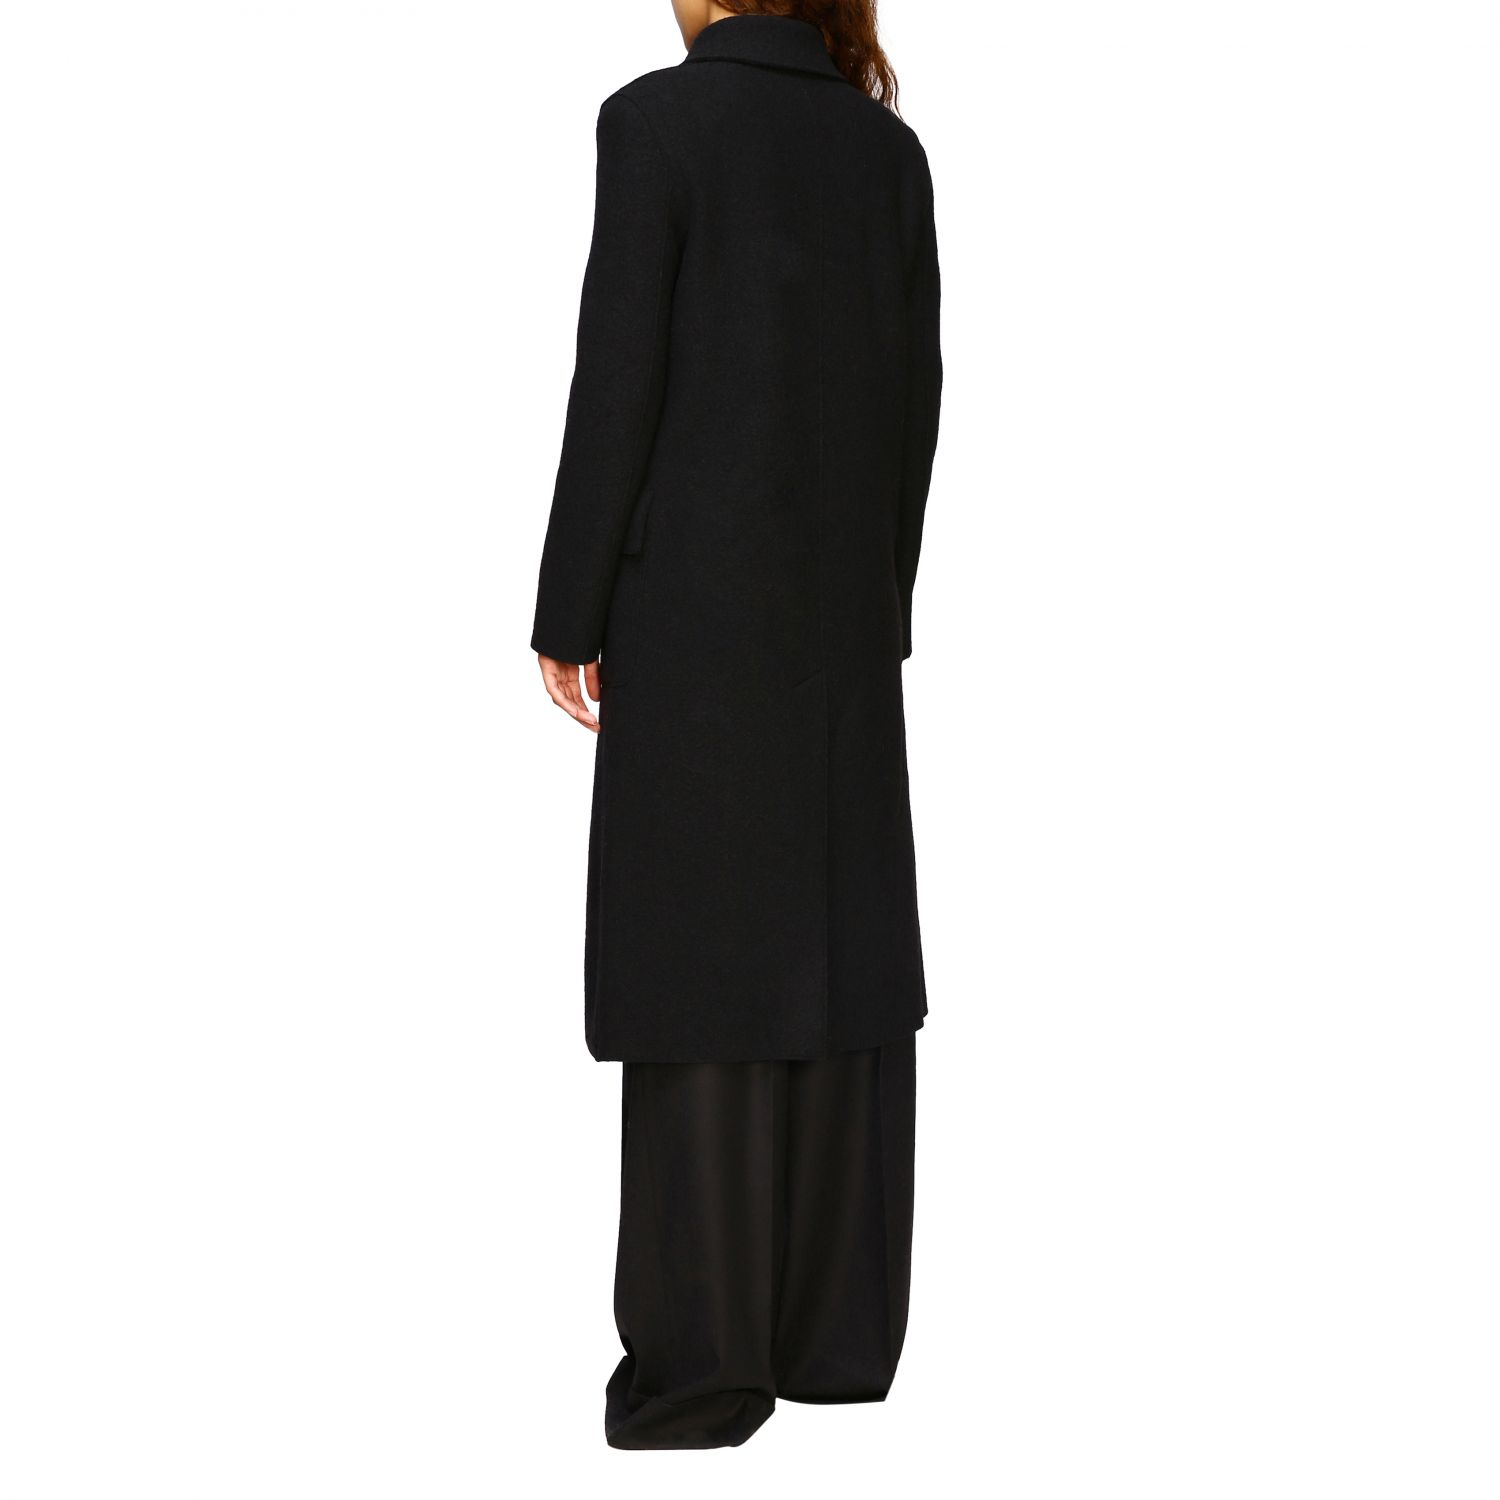 Coat Harris Wharf London: Coat women Harris Wharf London black 3